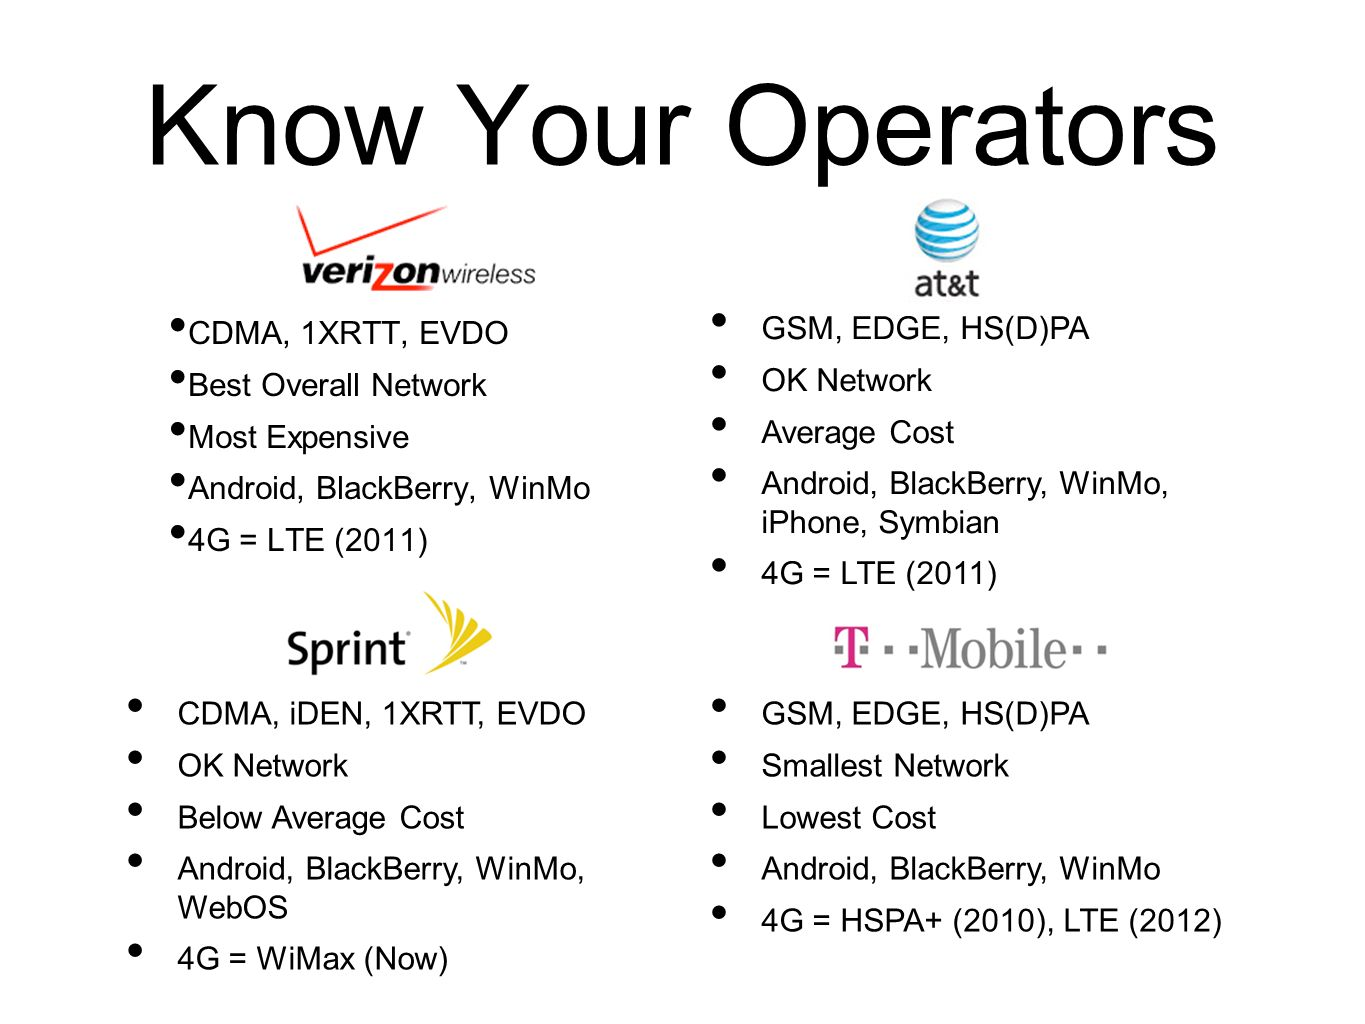 Know Your Operators CDMA, 1XRTT, EVDO Best Overall Network Most Expensive Android, BlackBerry, WinMo 4G = LTE (2011) GSM, EDGE, HS(D)PA OK Network Ave